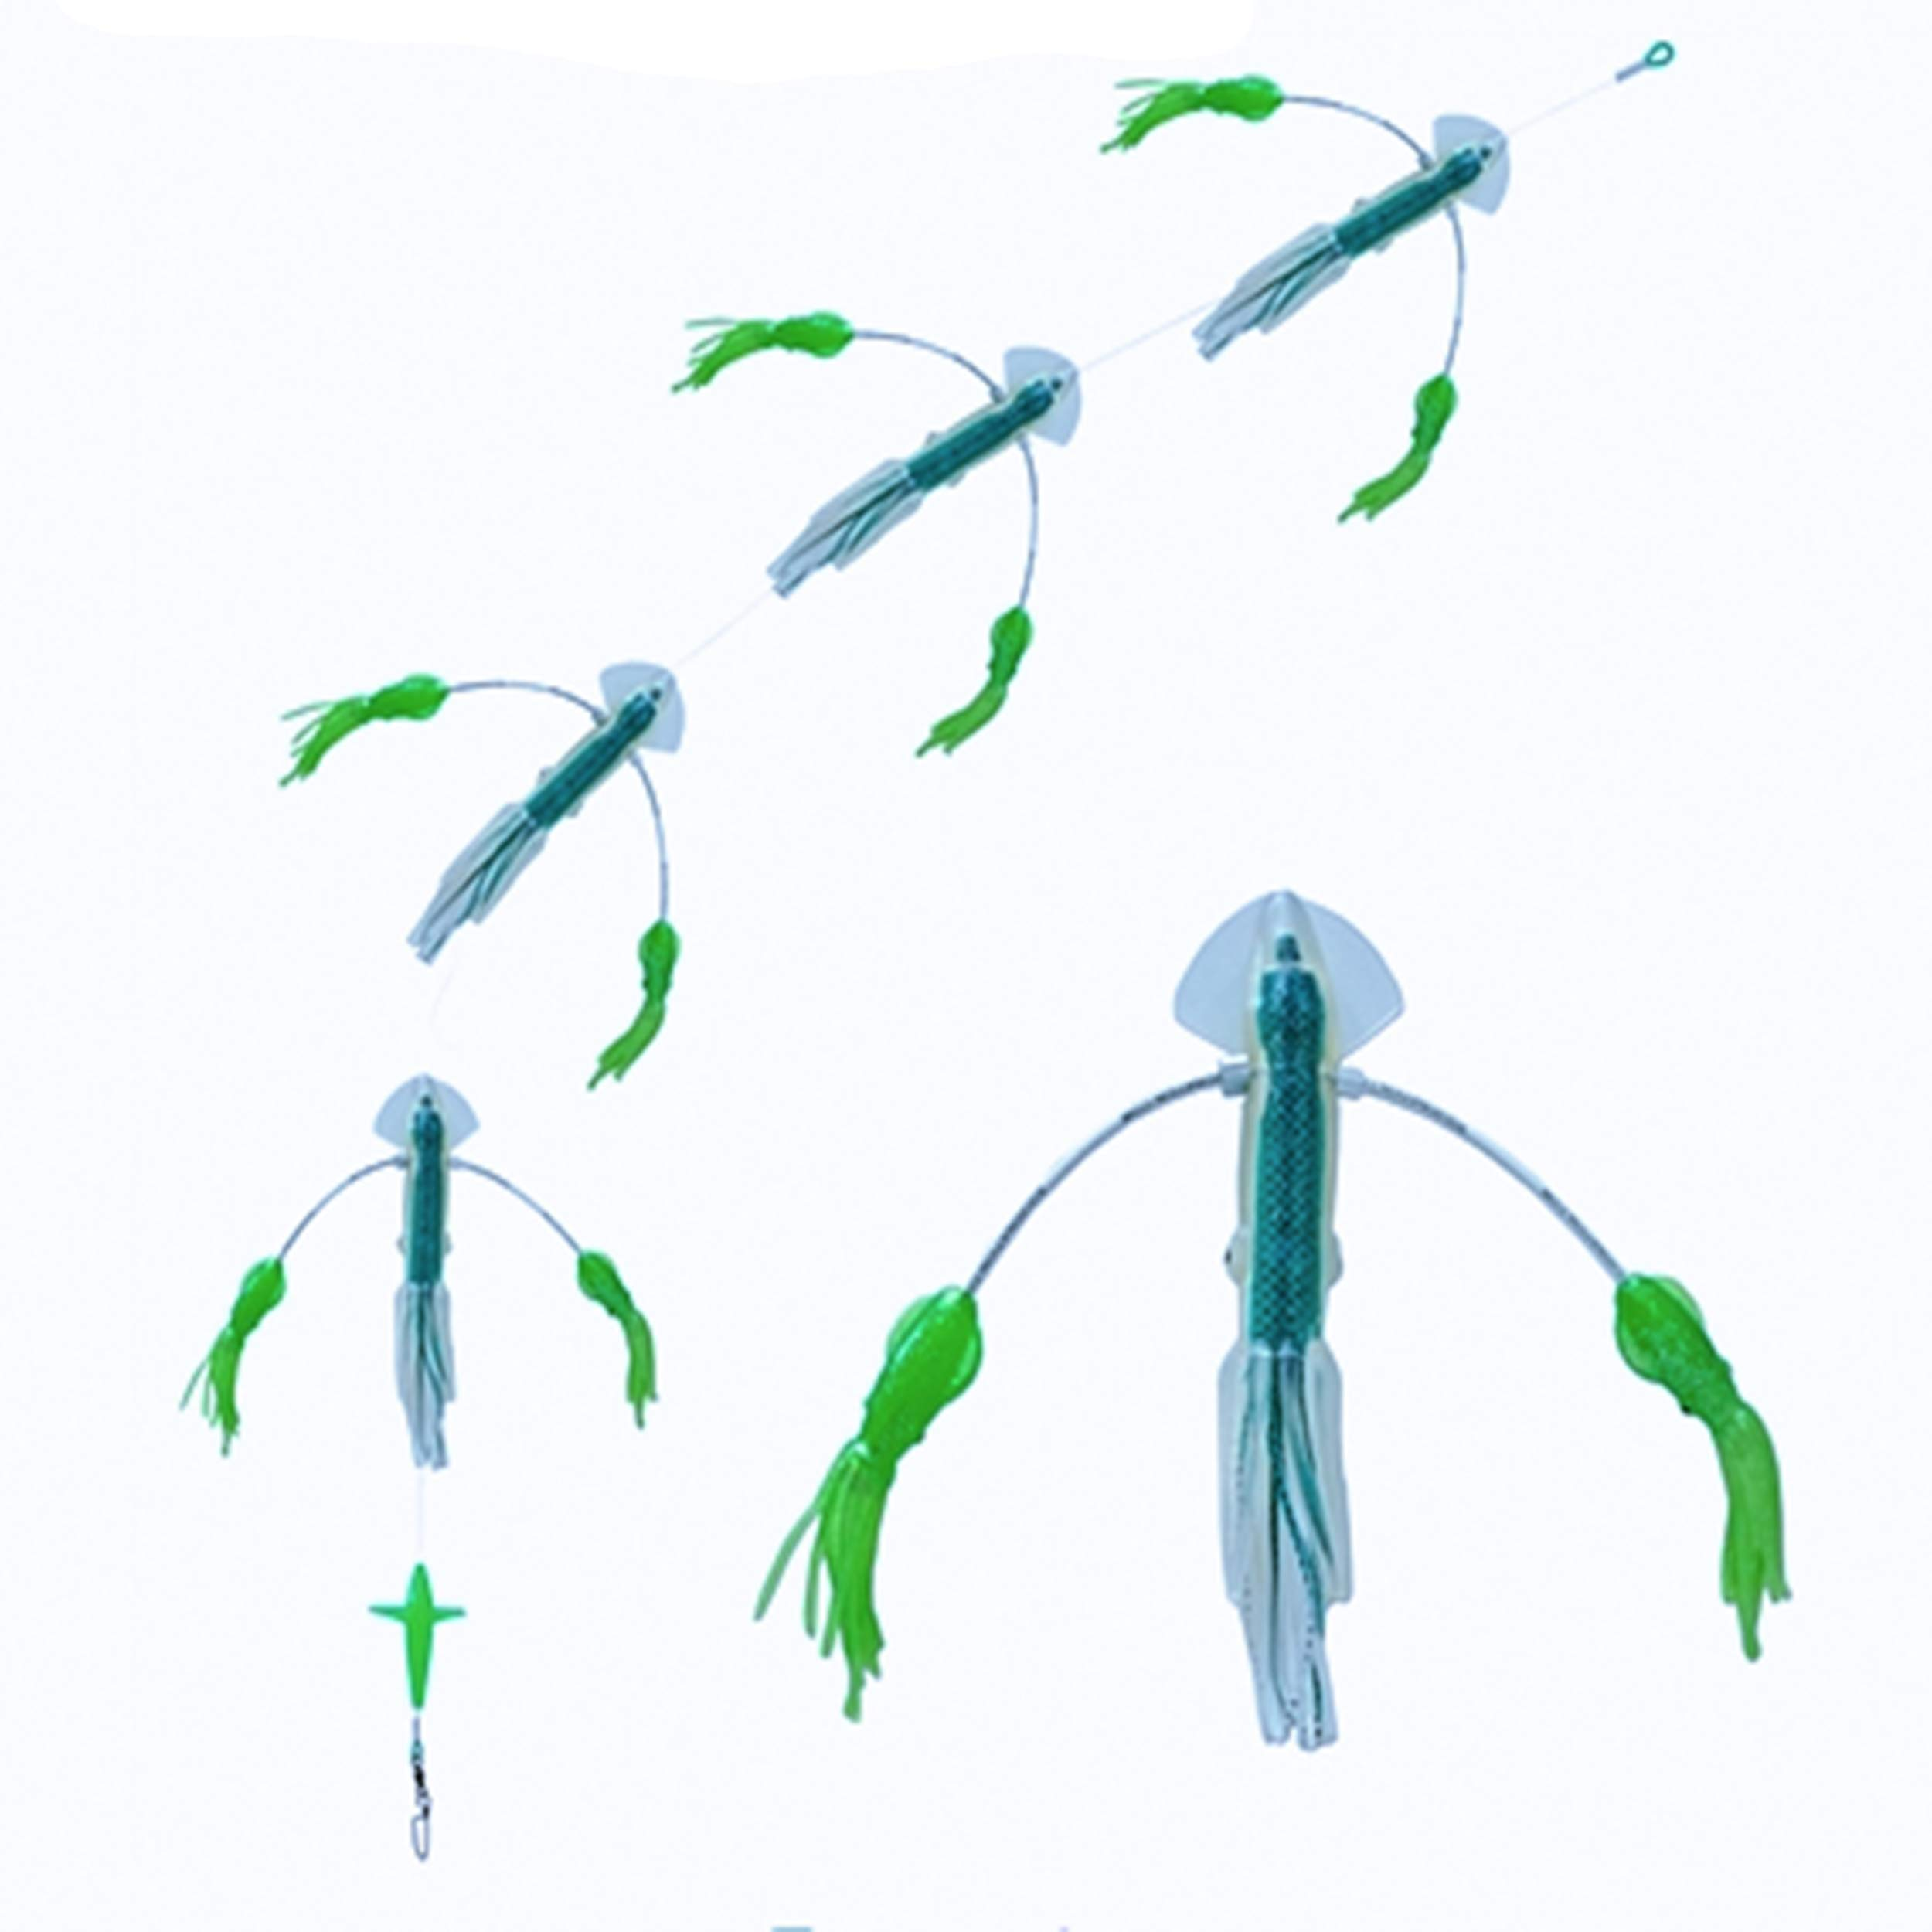 Squidnation Long Tail Flippy Floppy Thing Fishing Daisy Chain Tuna & Marlin Magnet (09)